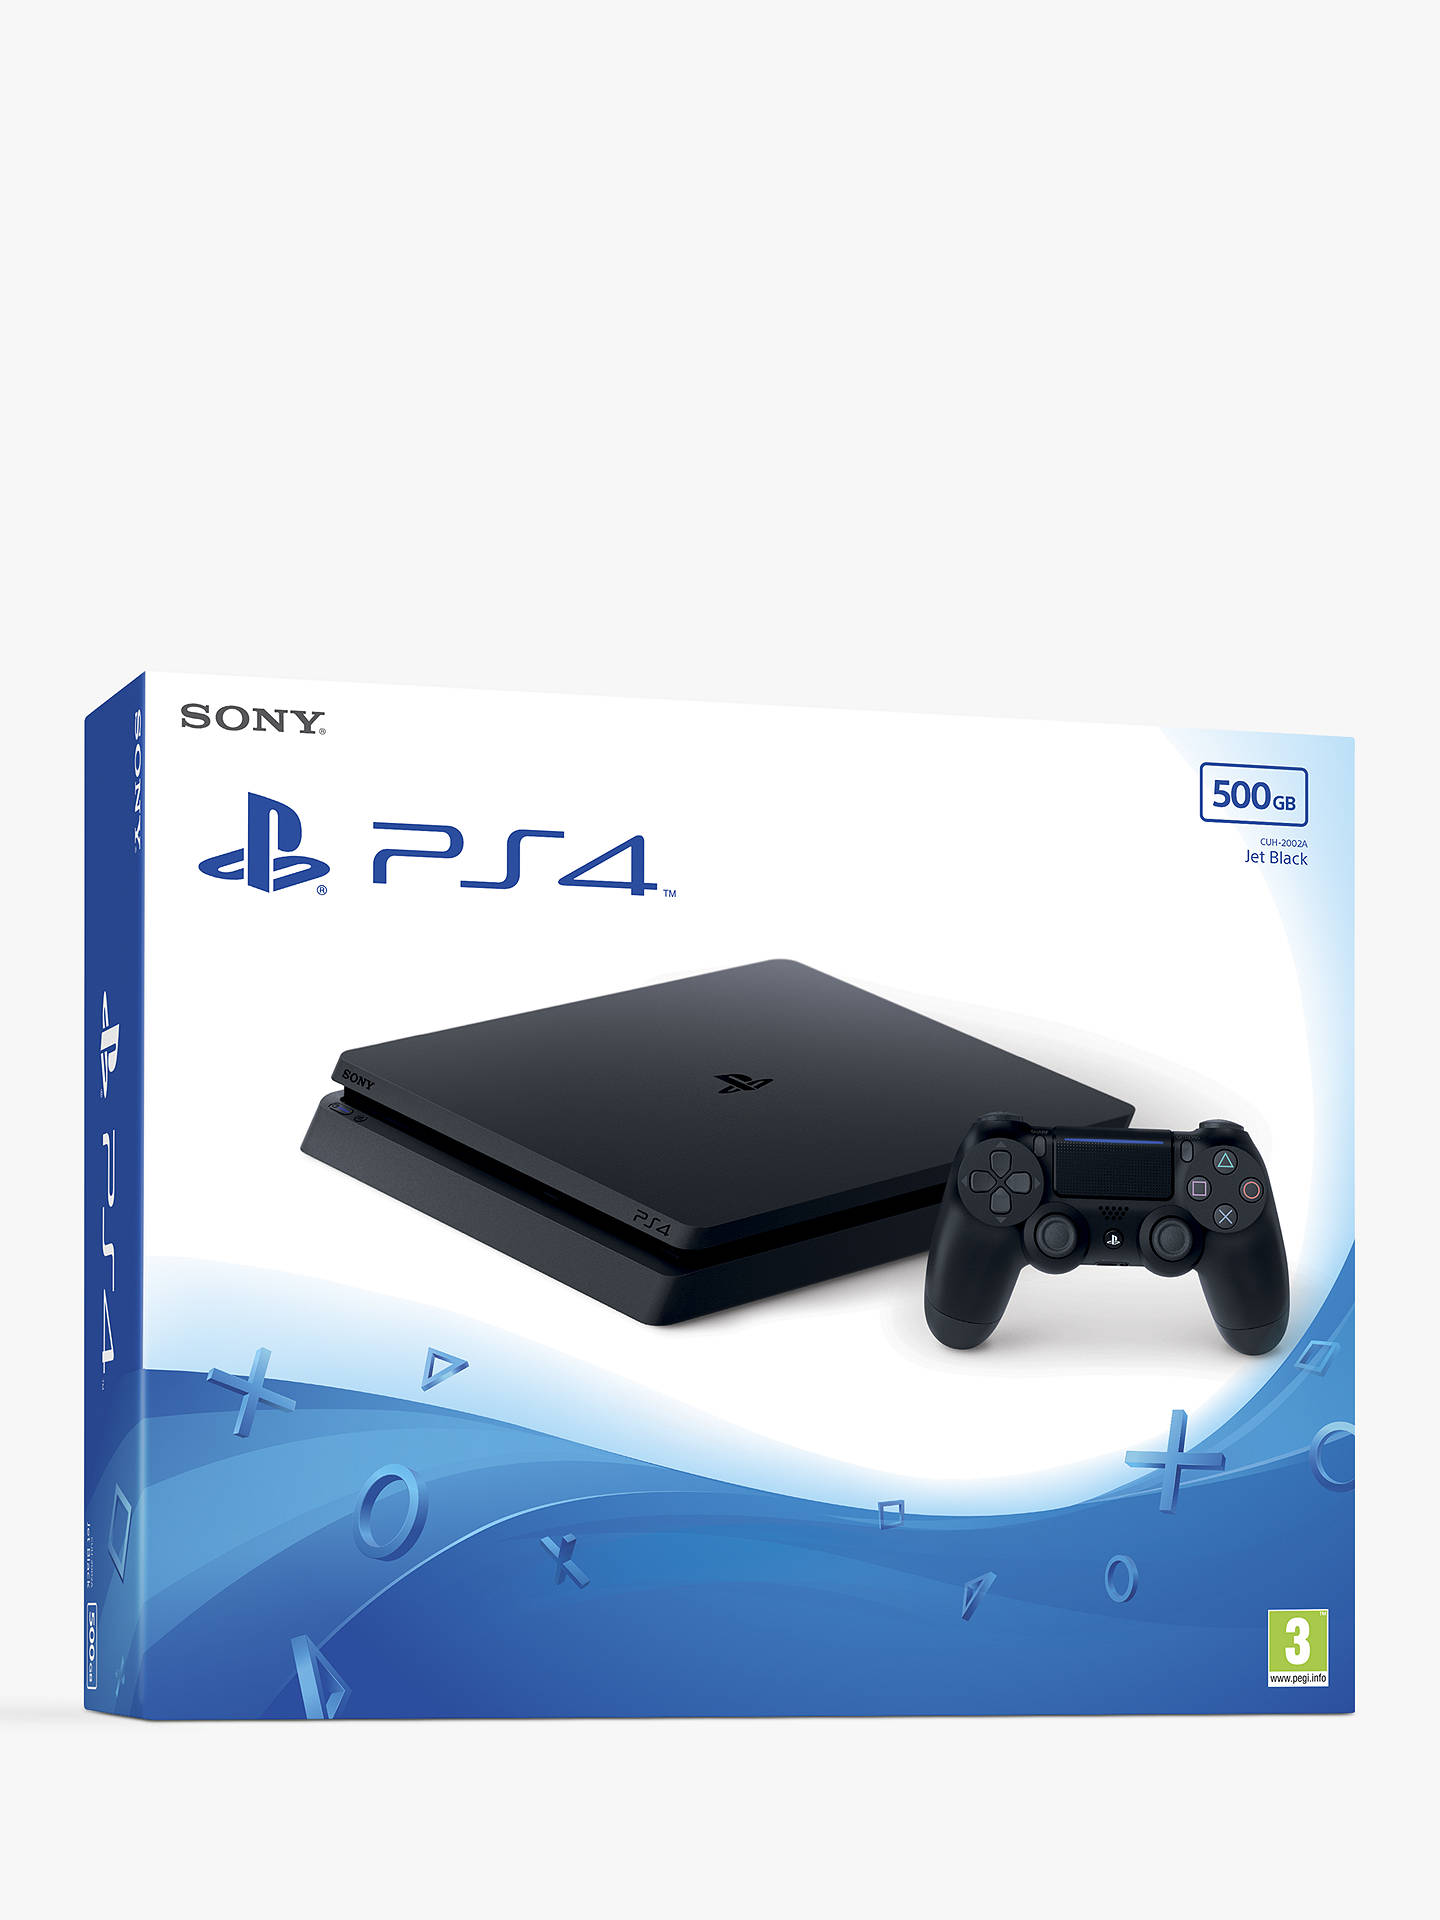 Buy Sony PlayStation 4 Slim Console with DUALSHOCK 4 Controller, 500GB, Jet Black Online at johnlewis.com